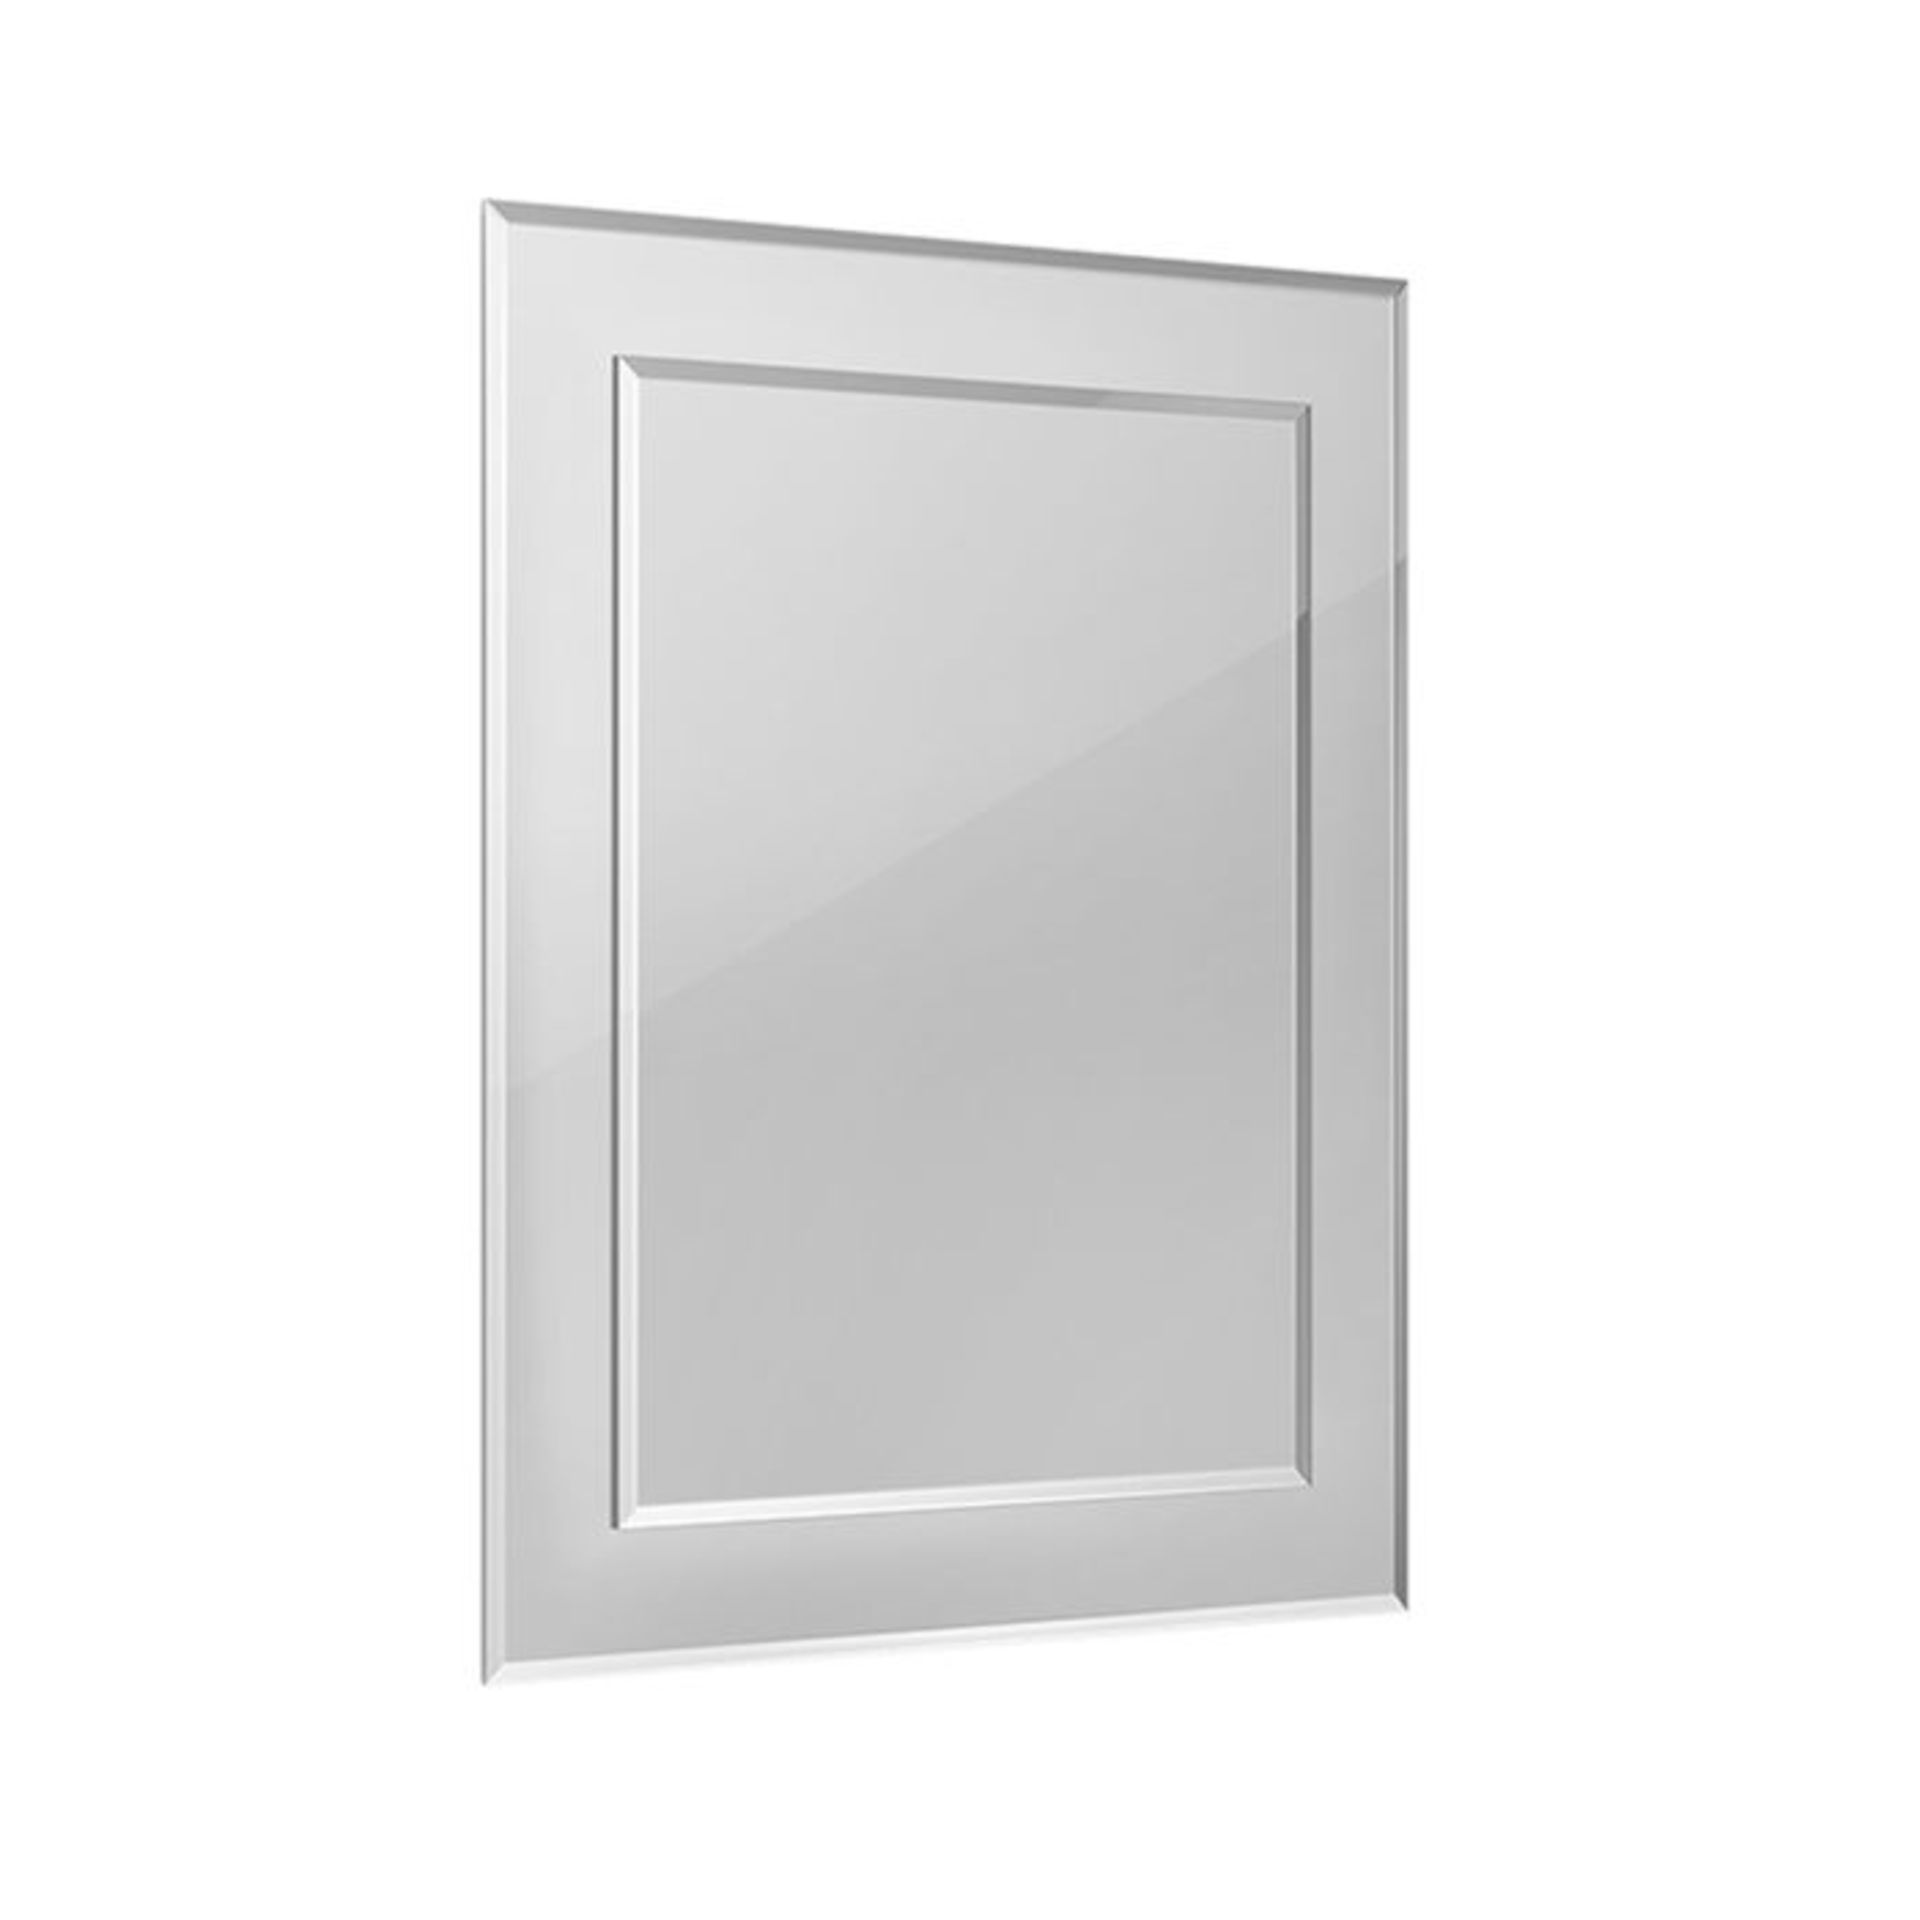 Lot 59 - (XX40) 400x500mm Bevel Mirror. Smooth beveled edge for additional safety Supplied fully assem...